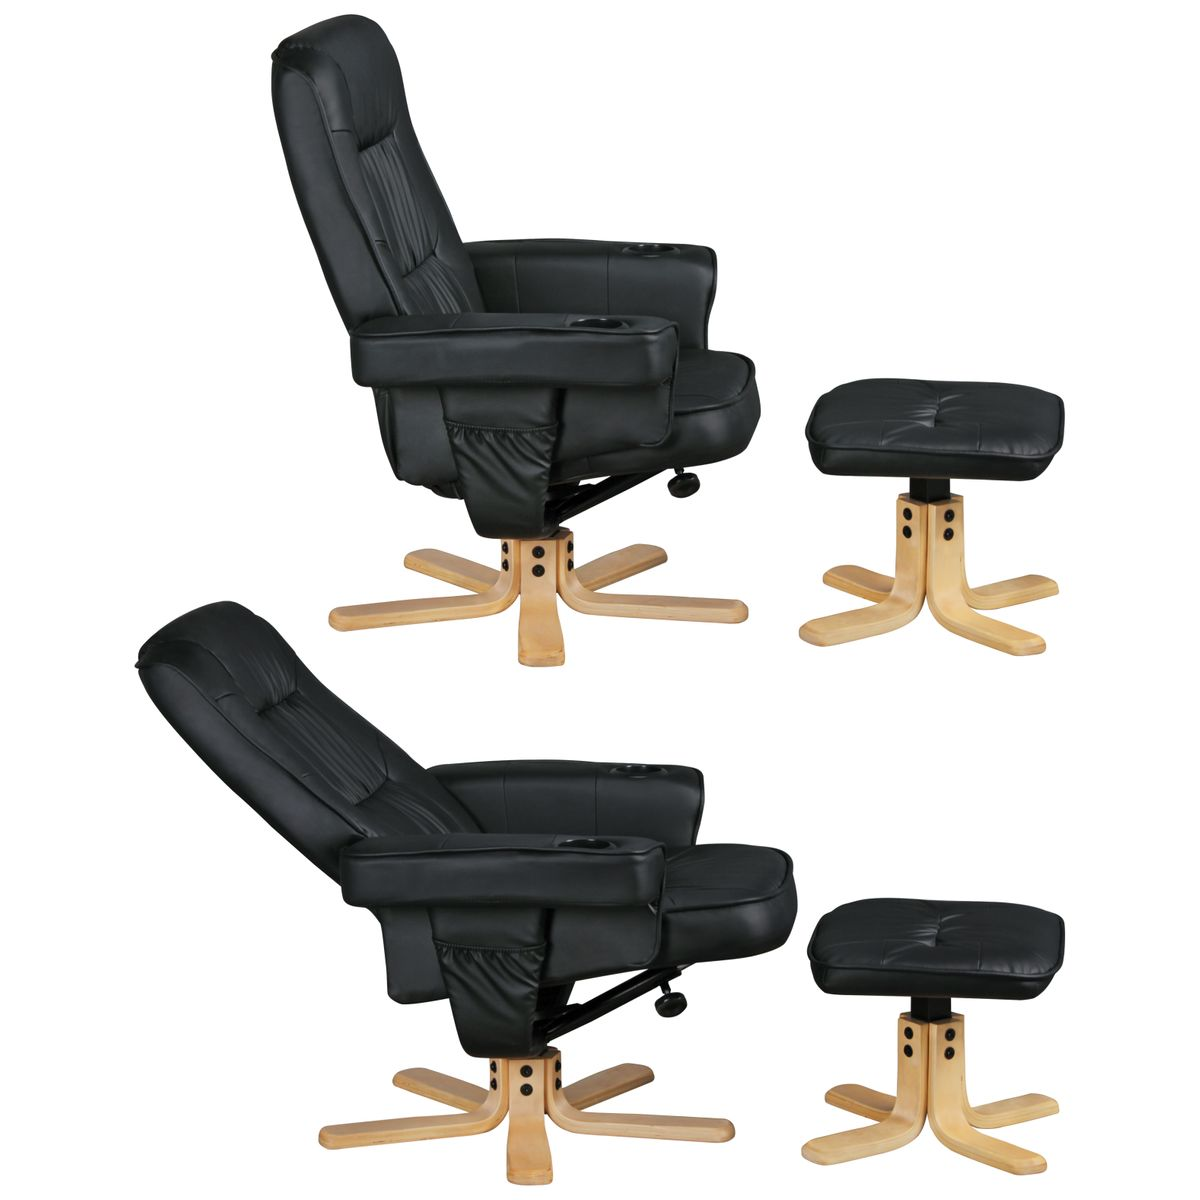 relaxstuhl mit hocker relax duo tv sessel fu ablage fernsehsessel relaxsessel ebay. Black Bedroom Furniture Sets. Home Design Ideas